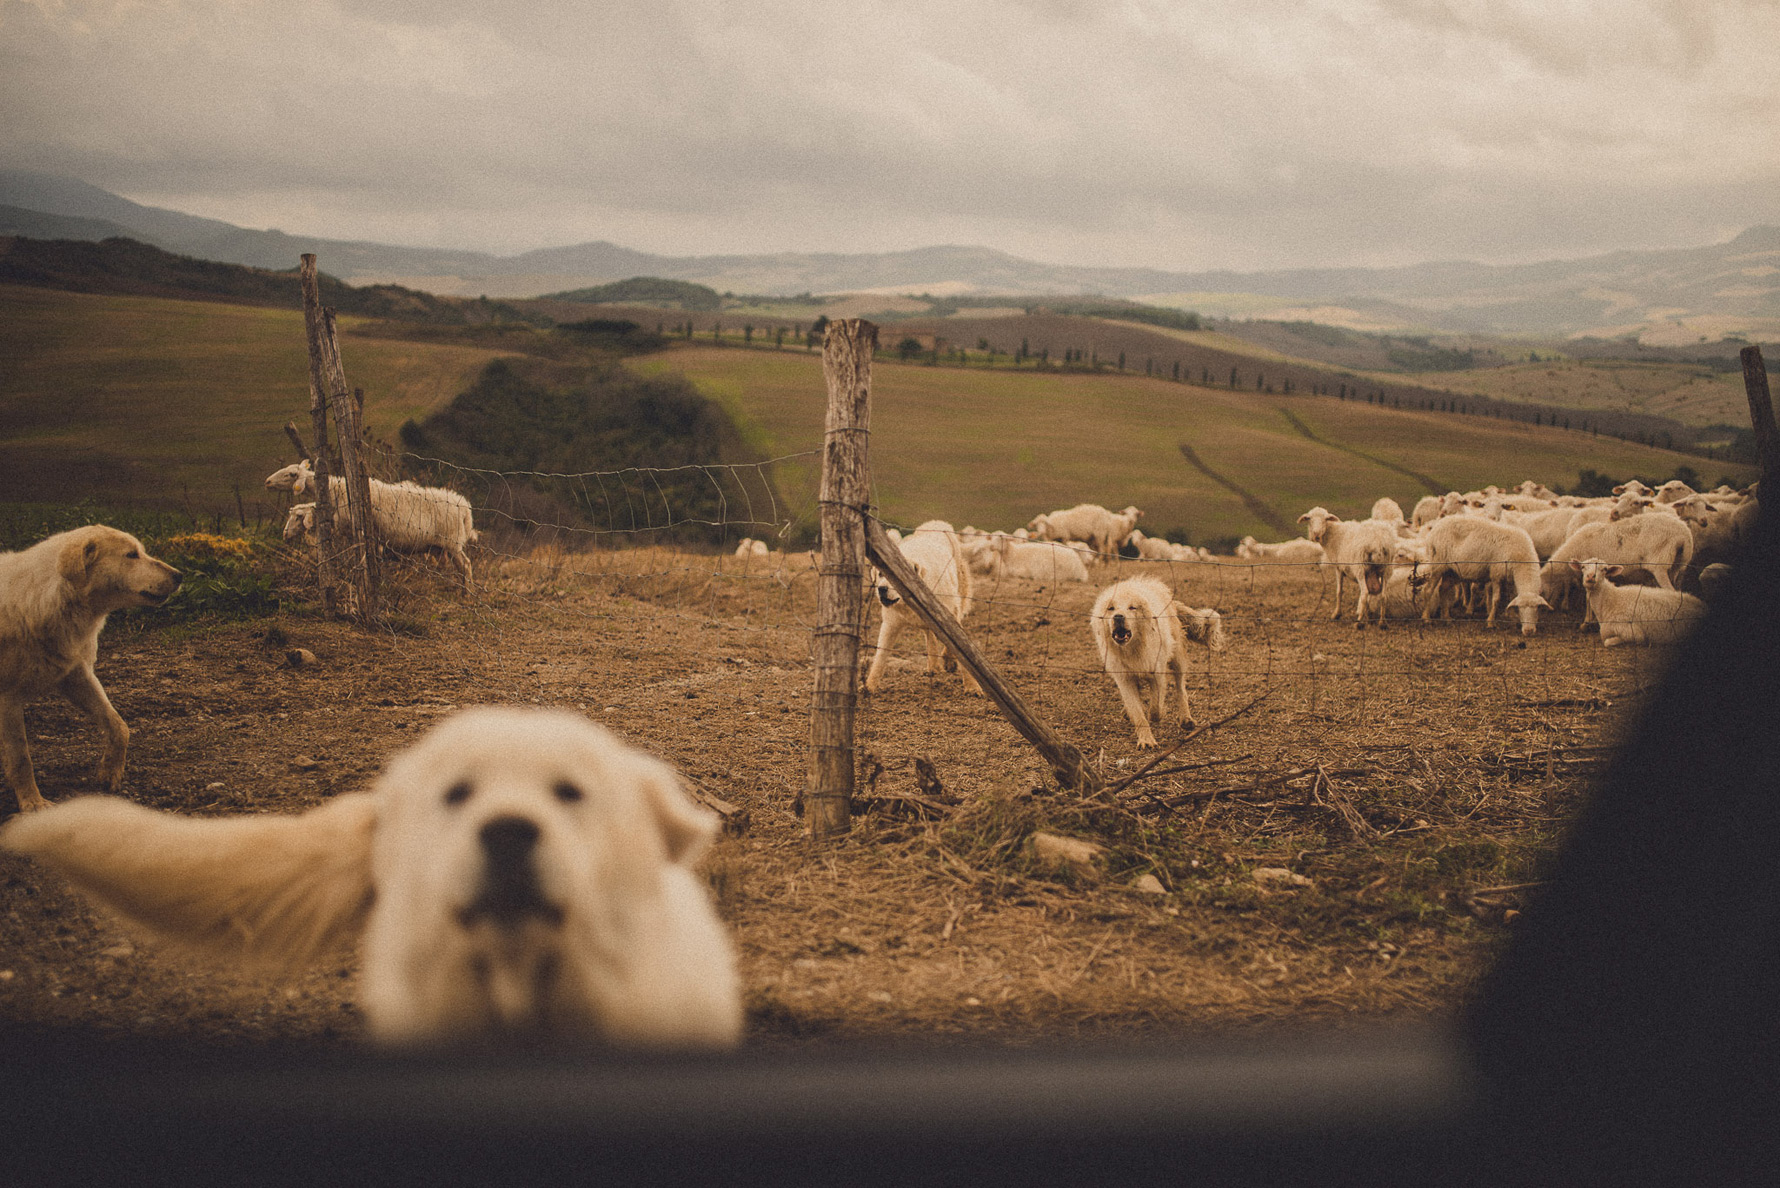 outdoor-rustic-wedding-in-tuscany-countryside-livio-lacurre-photography